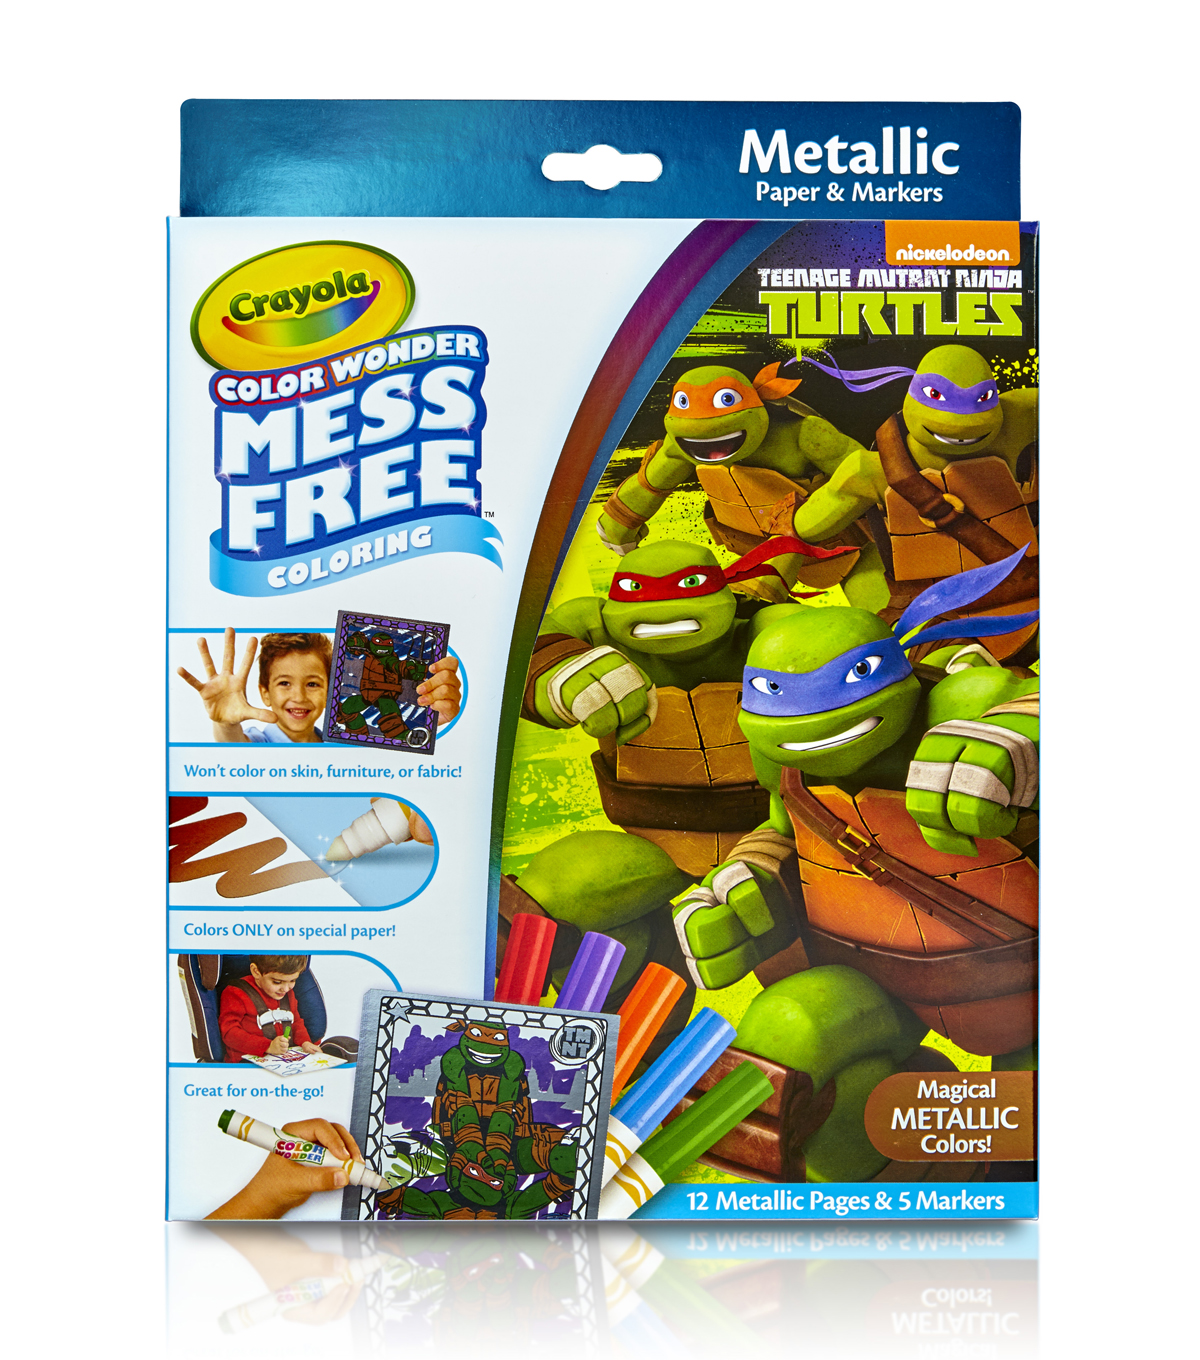 Crayola Color Wonder Teenage Mutant Ninja Turtles Metallic Coloring